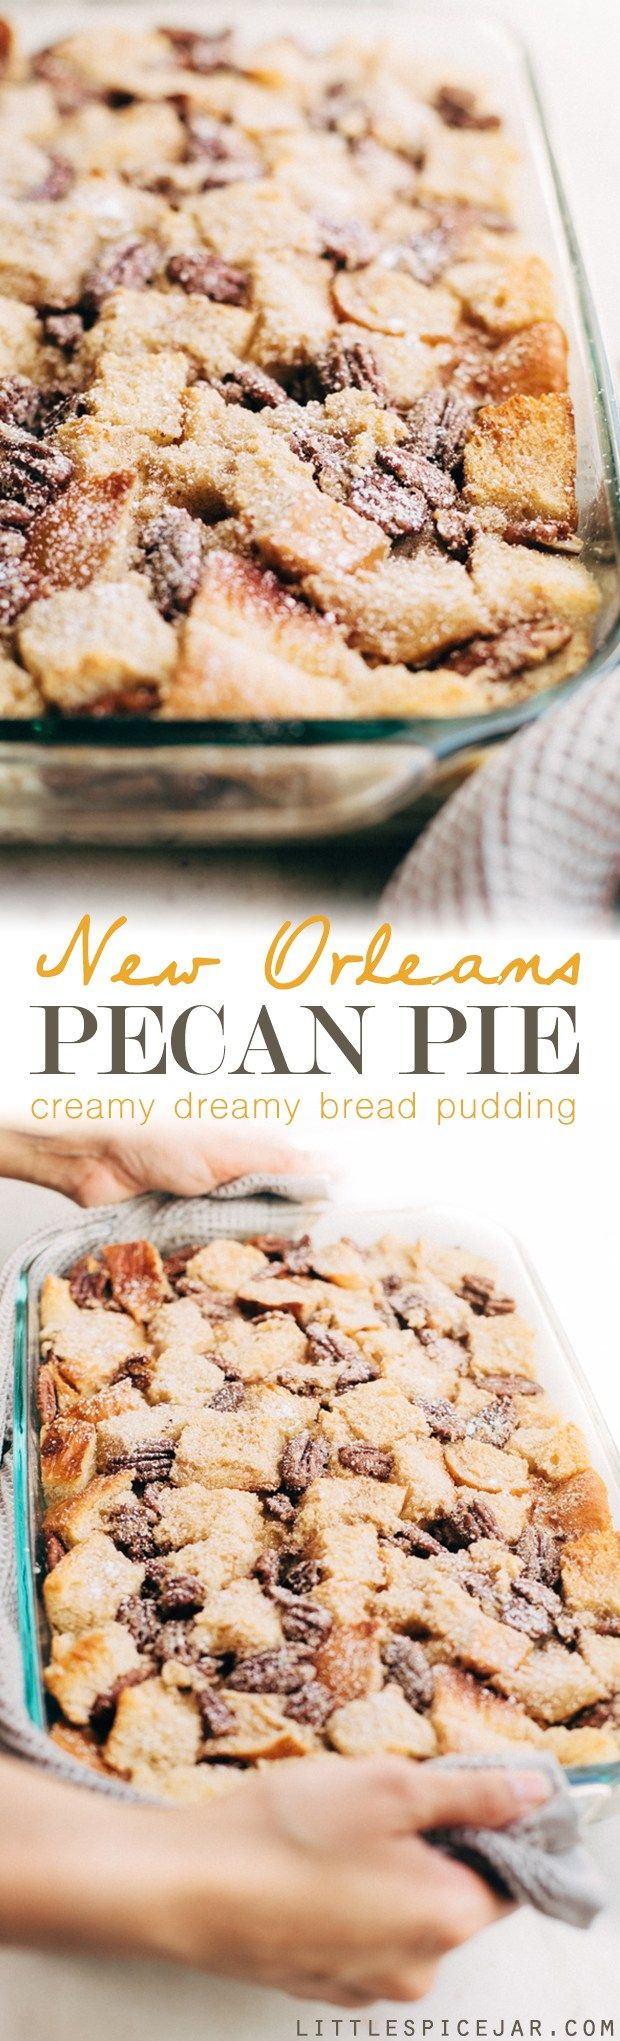 New Orleans Pecan Pie Bread Pudding - use up that leftover stale bread in this make-ahead dessert! The perfect holiday treat! #dessert #breadpudding #pecanpie | Littlespicejar.com